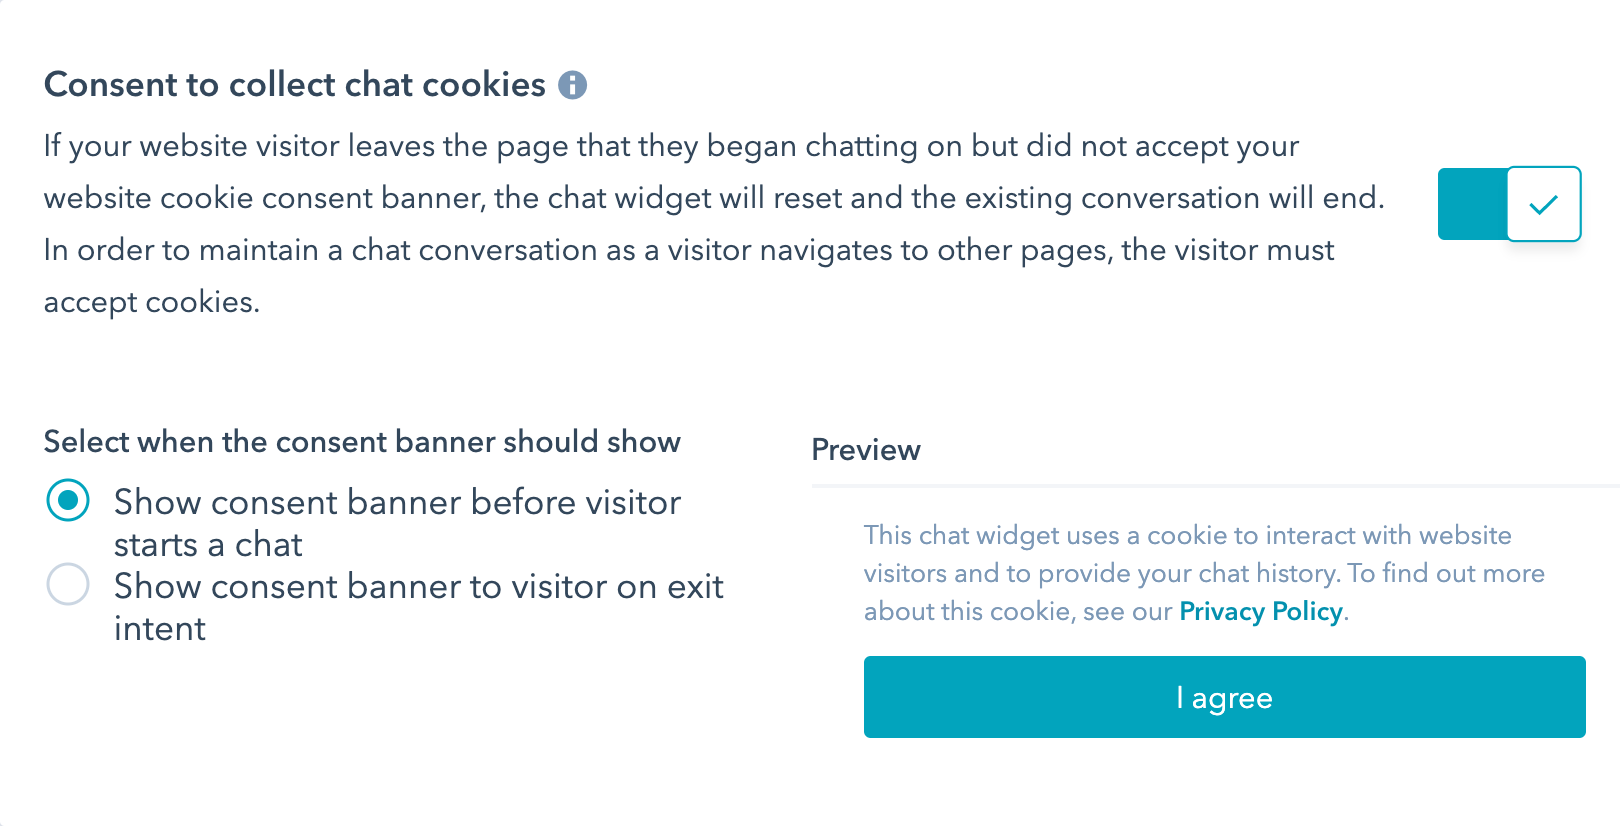 consent-to-cookies-banner-settings